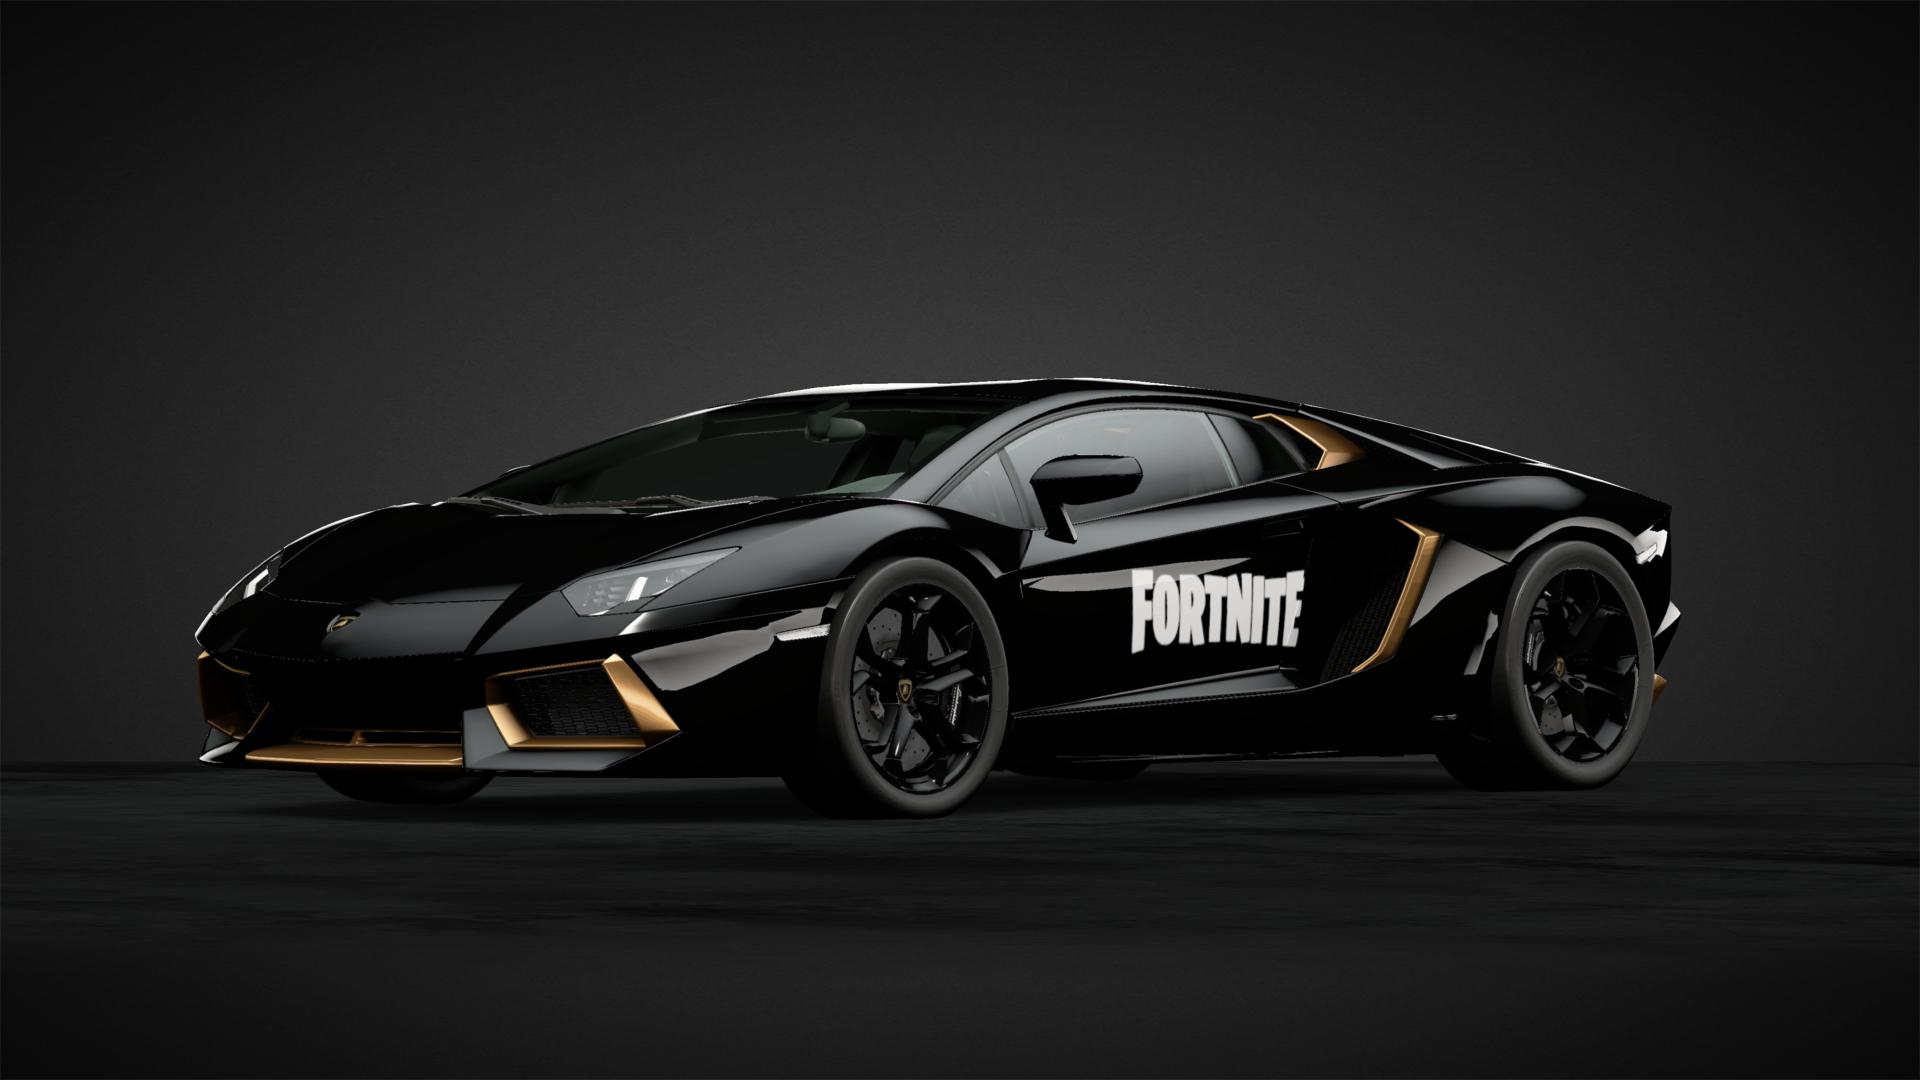 Fortnite Car Livery By Kratos849upbeat Community Gran